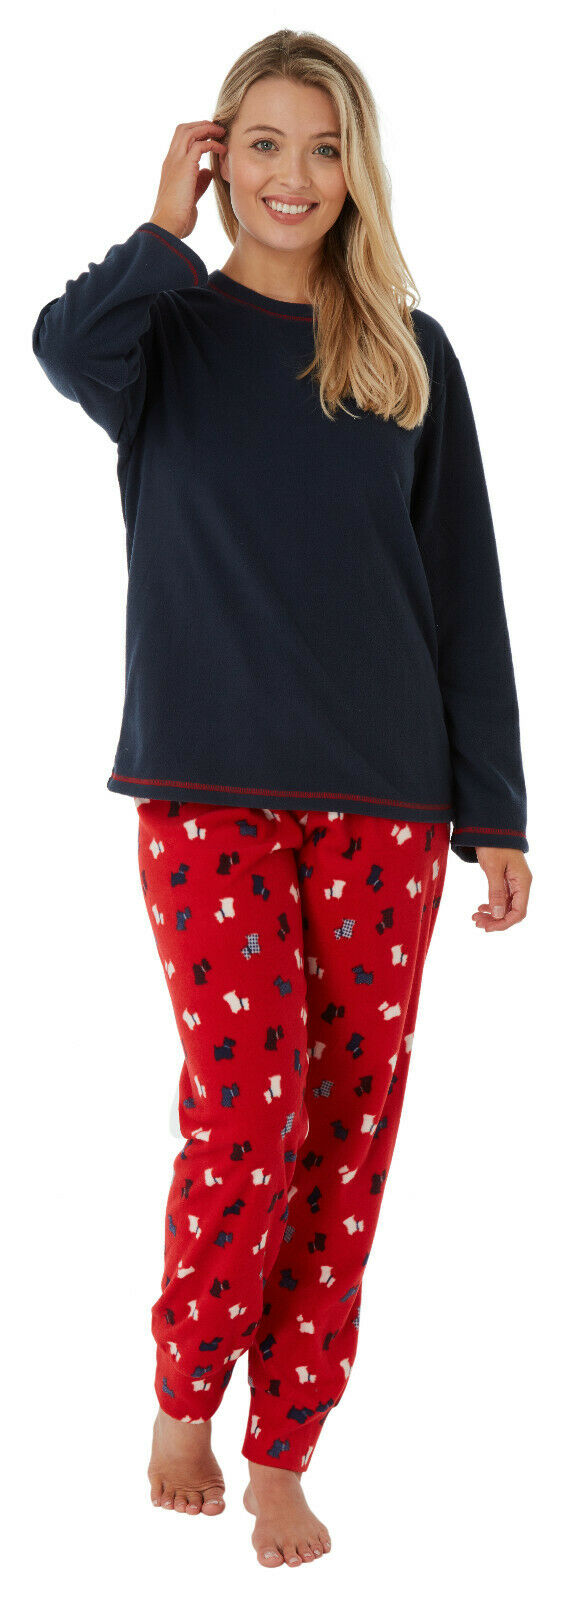 Ladies Suzy & Me Fleece Scotty Dog Pyjamas Size 10-12 only